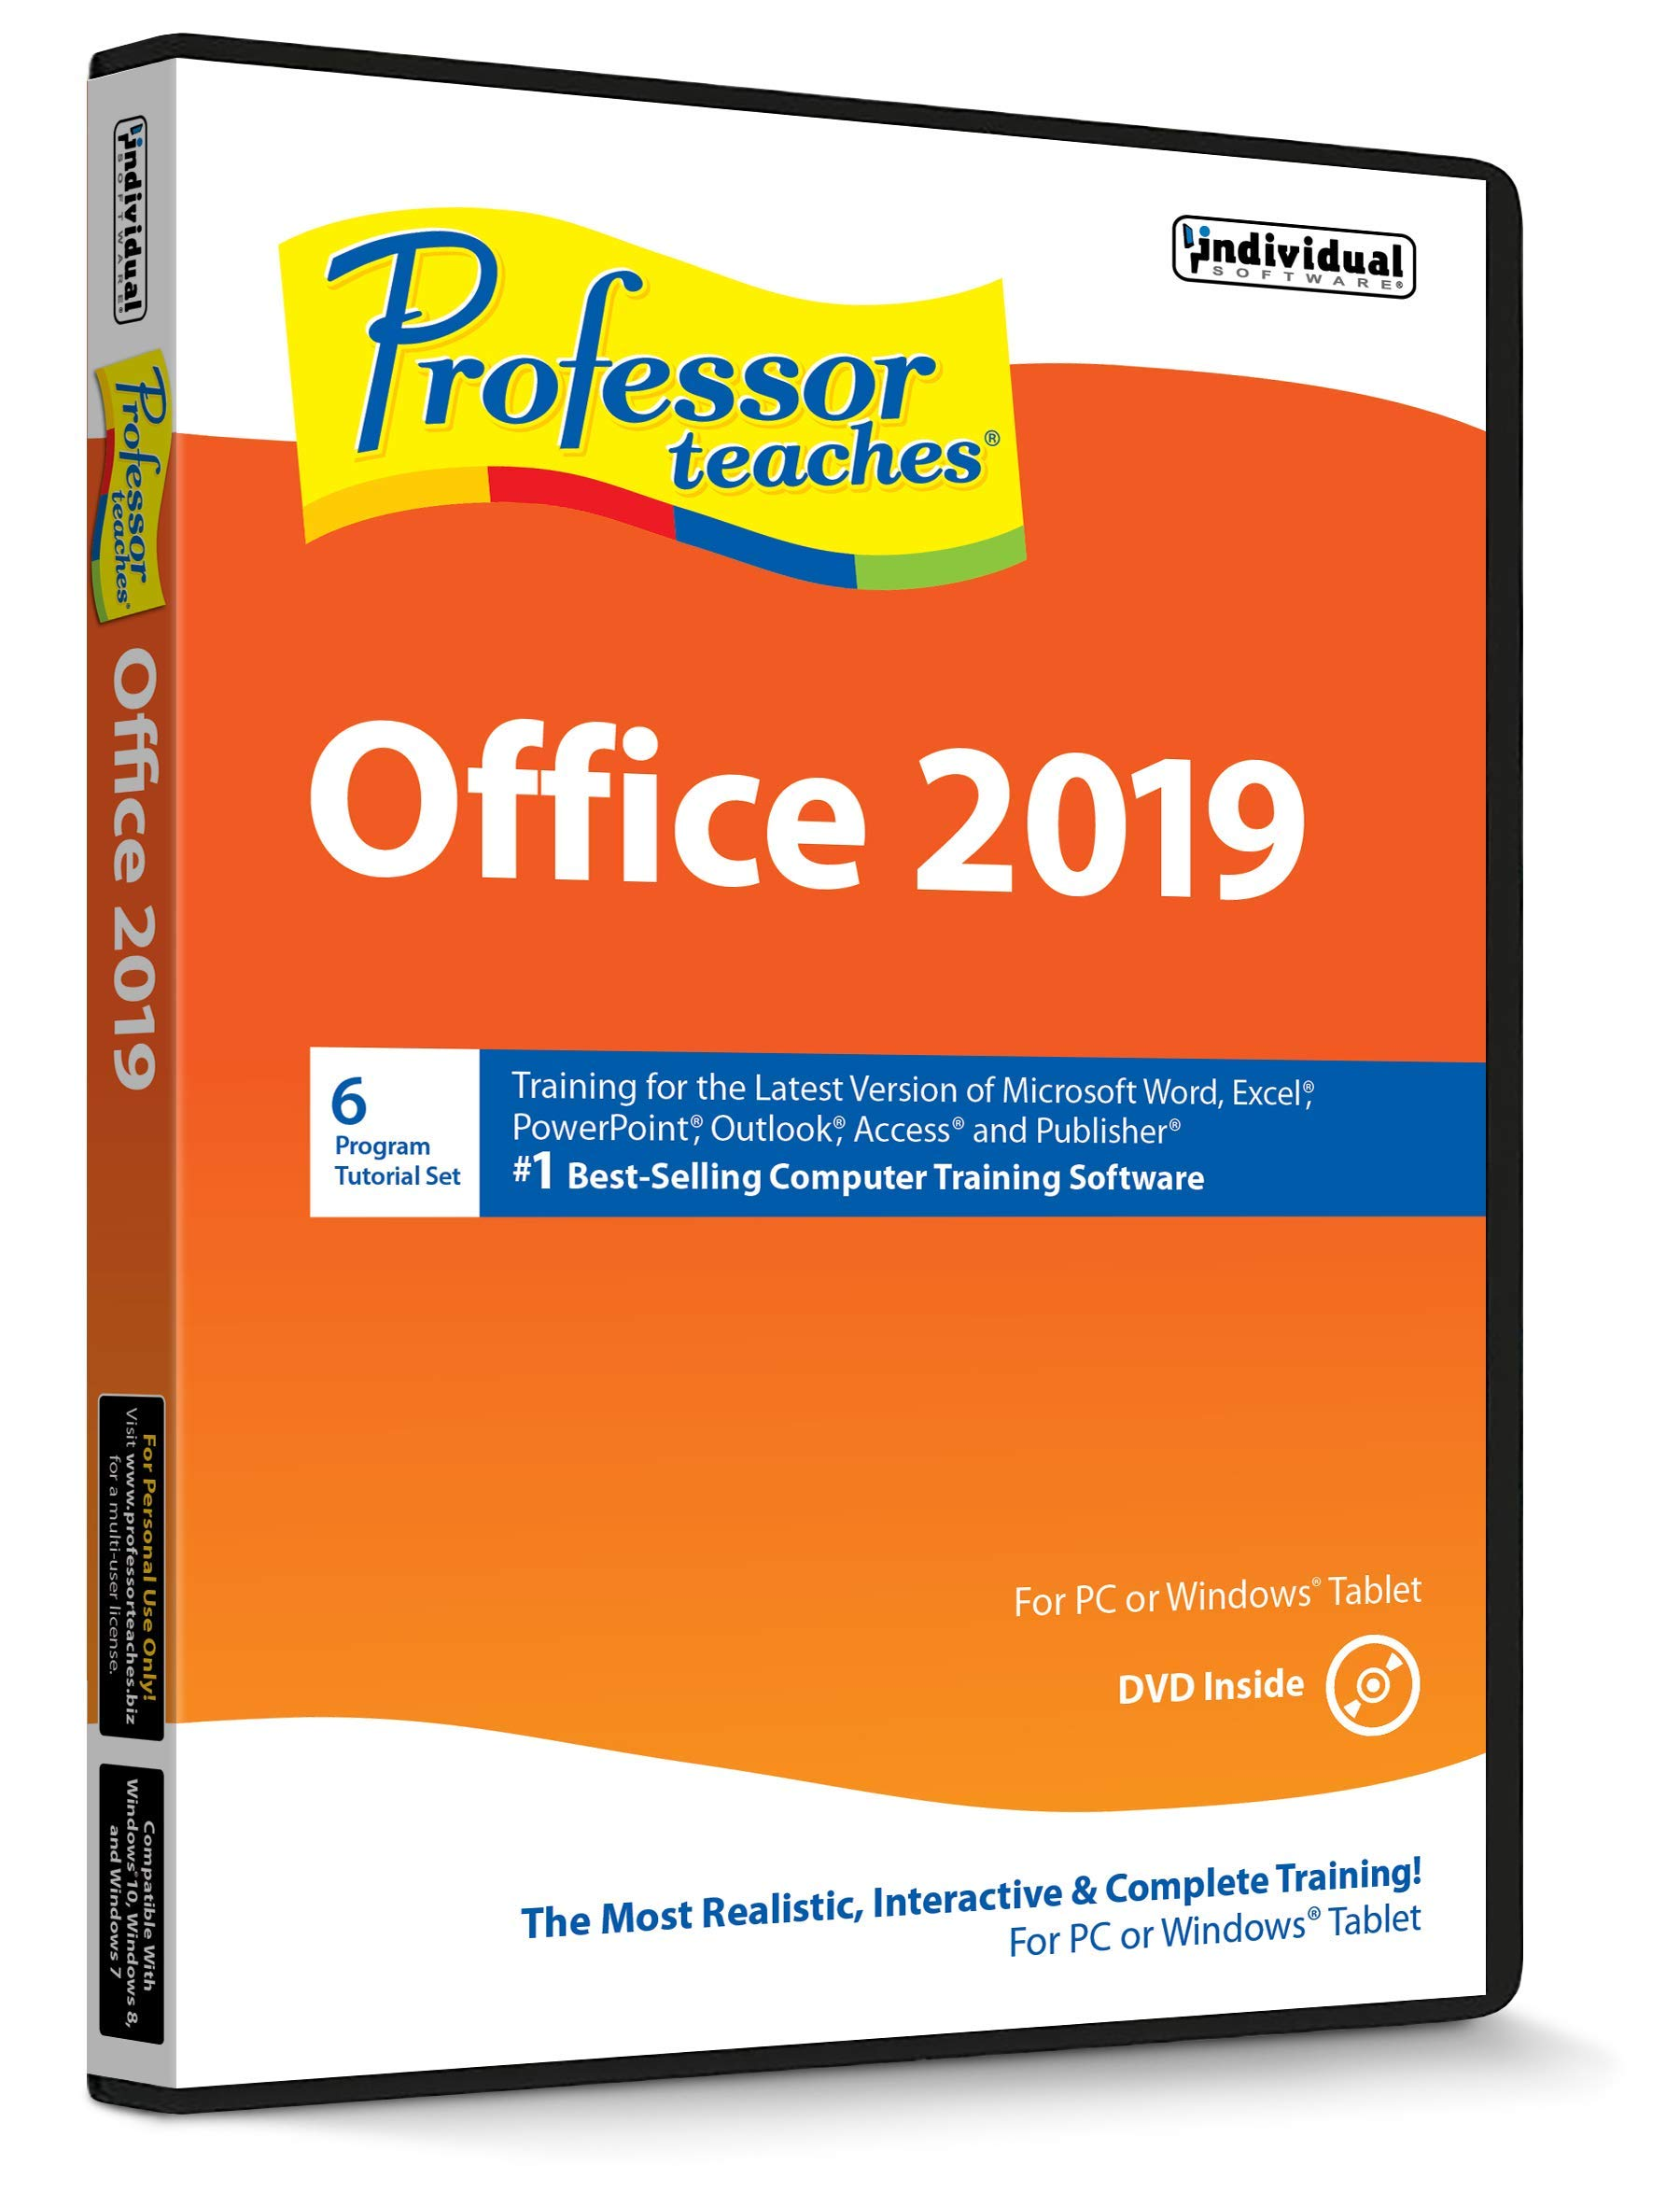 Professor Teaches Office 2019 by Individual Software